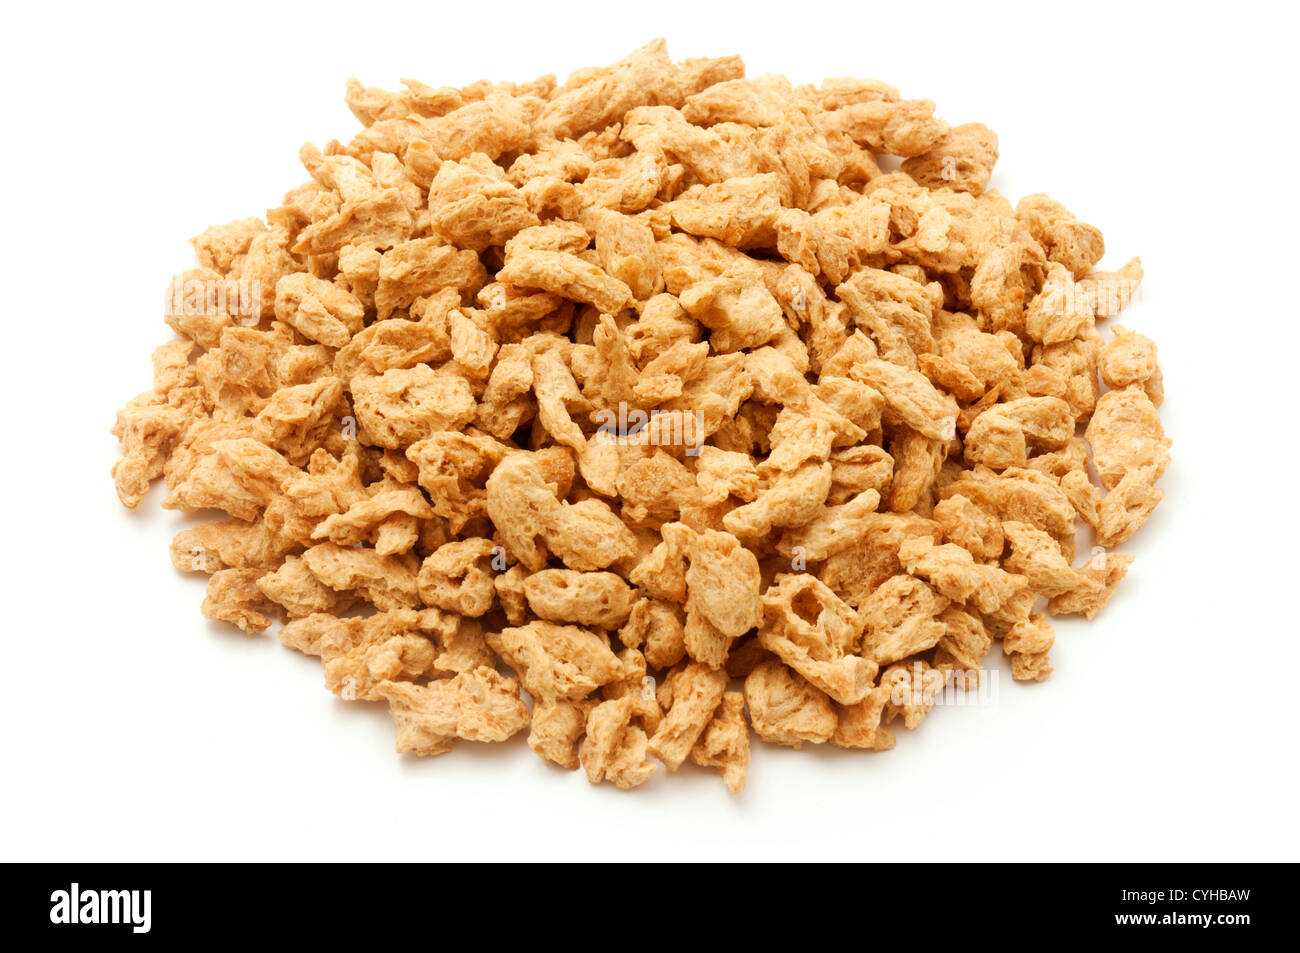 Textured vegetable protein on a white background - Stock Image